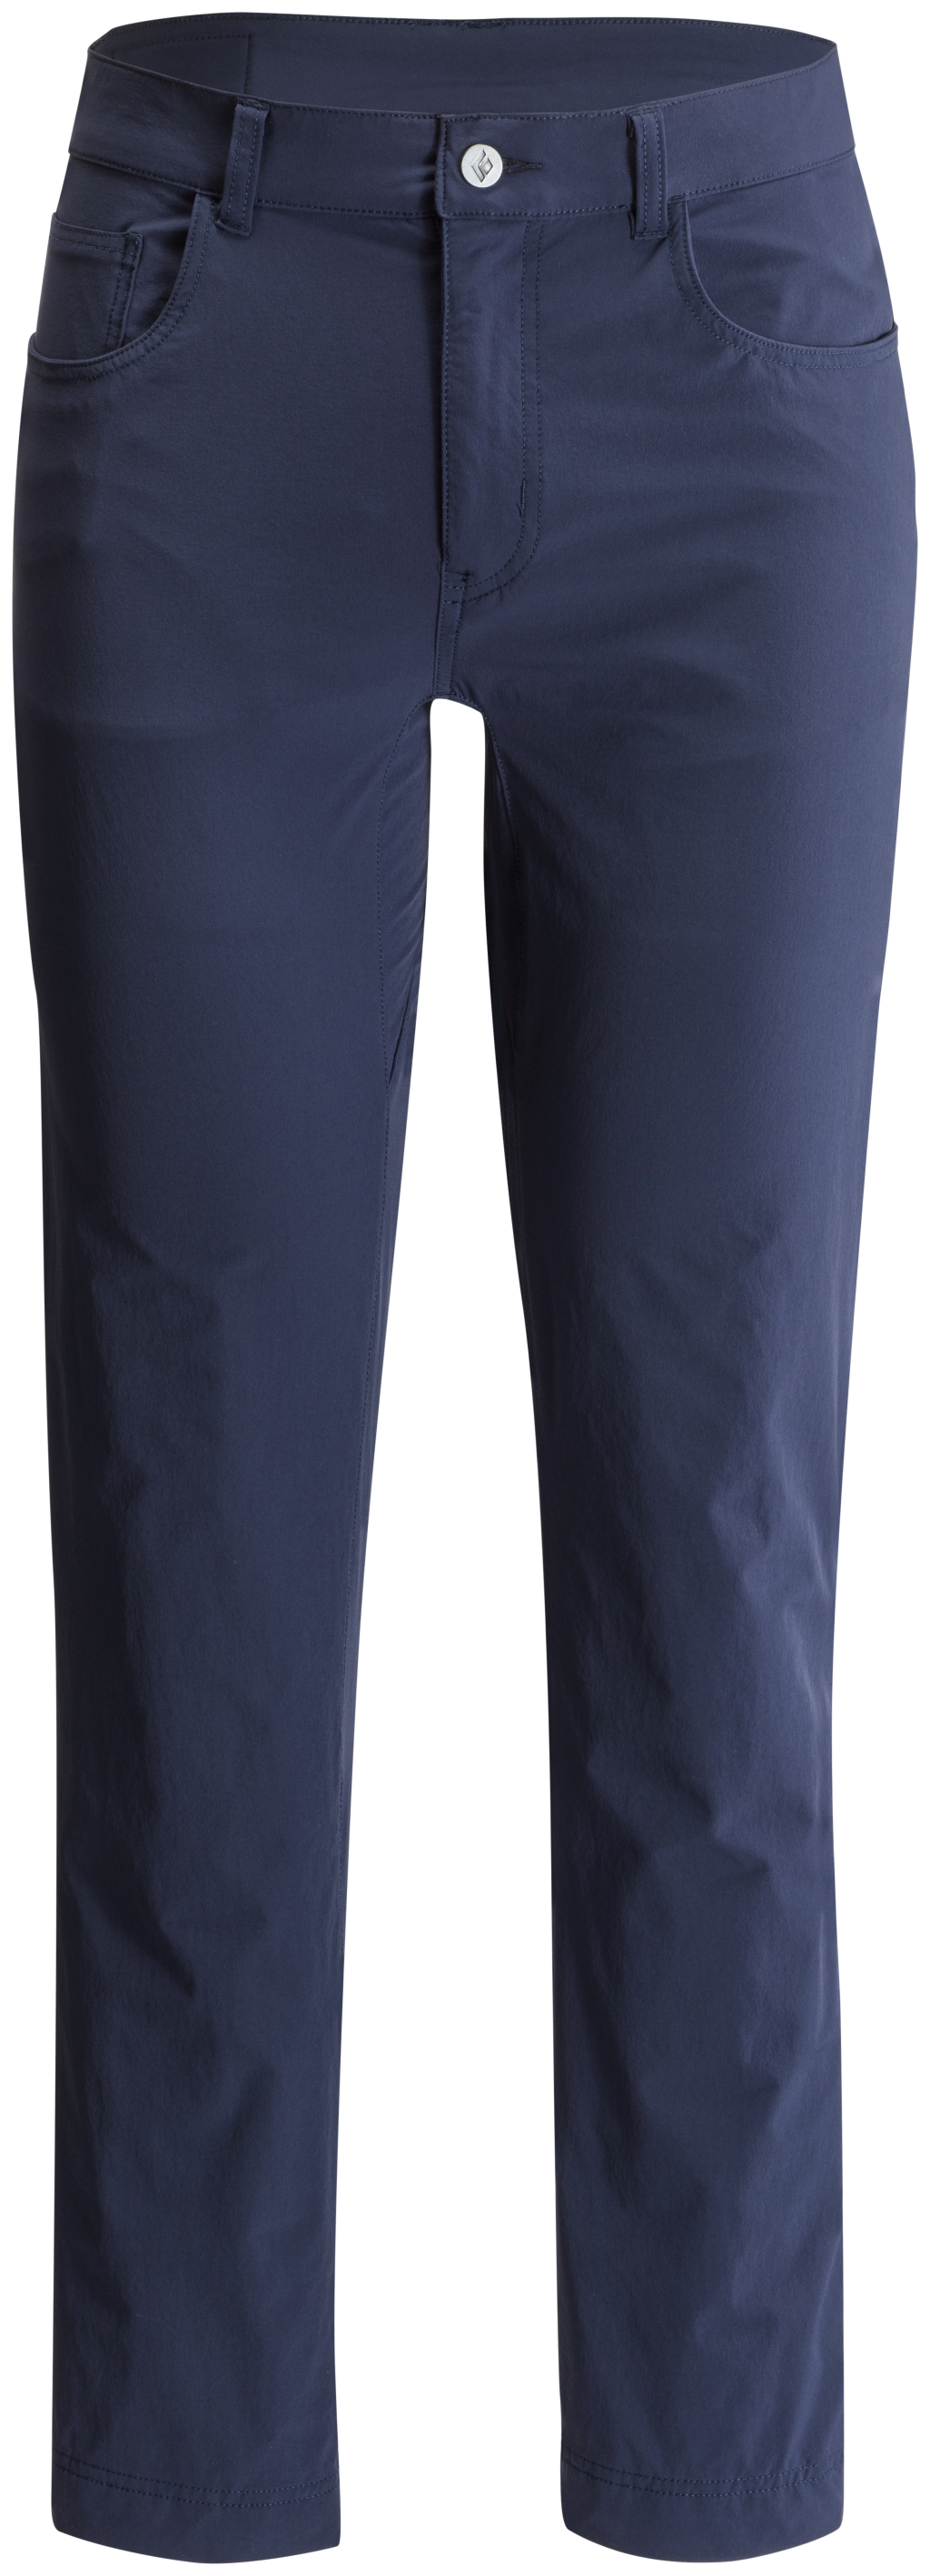 Black Diamond Modernist Rock Pants Captain-30